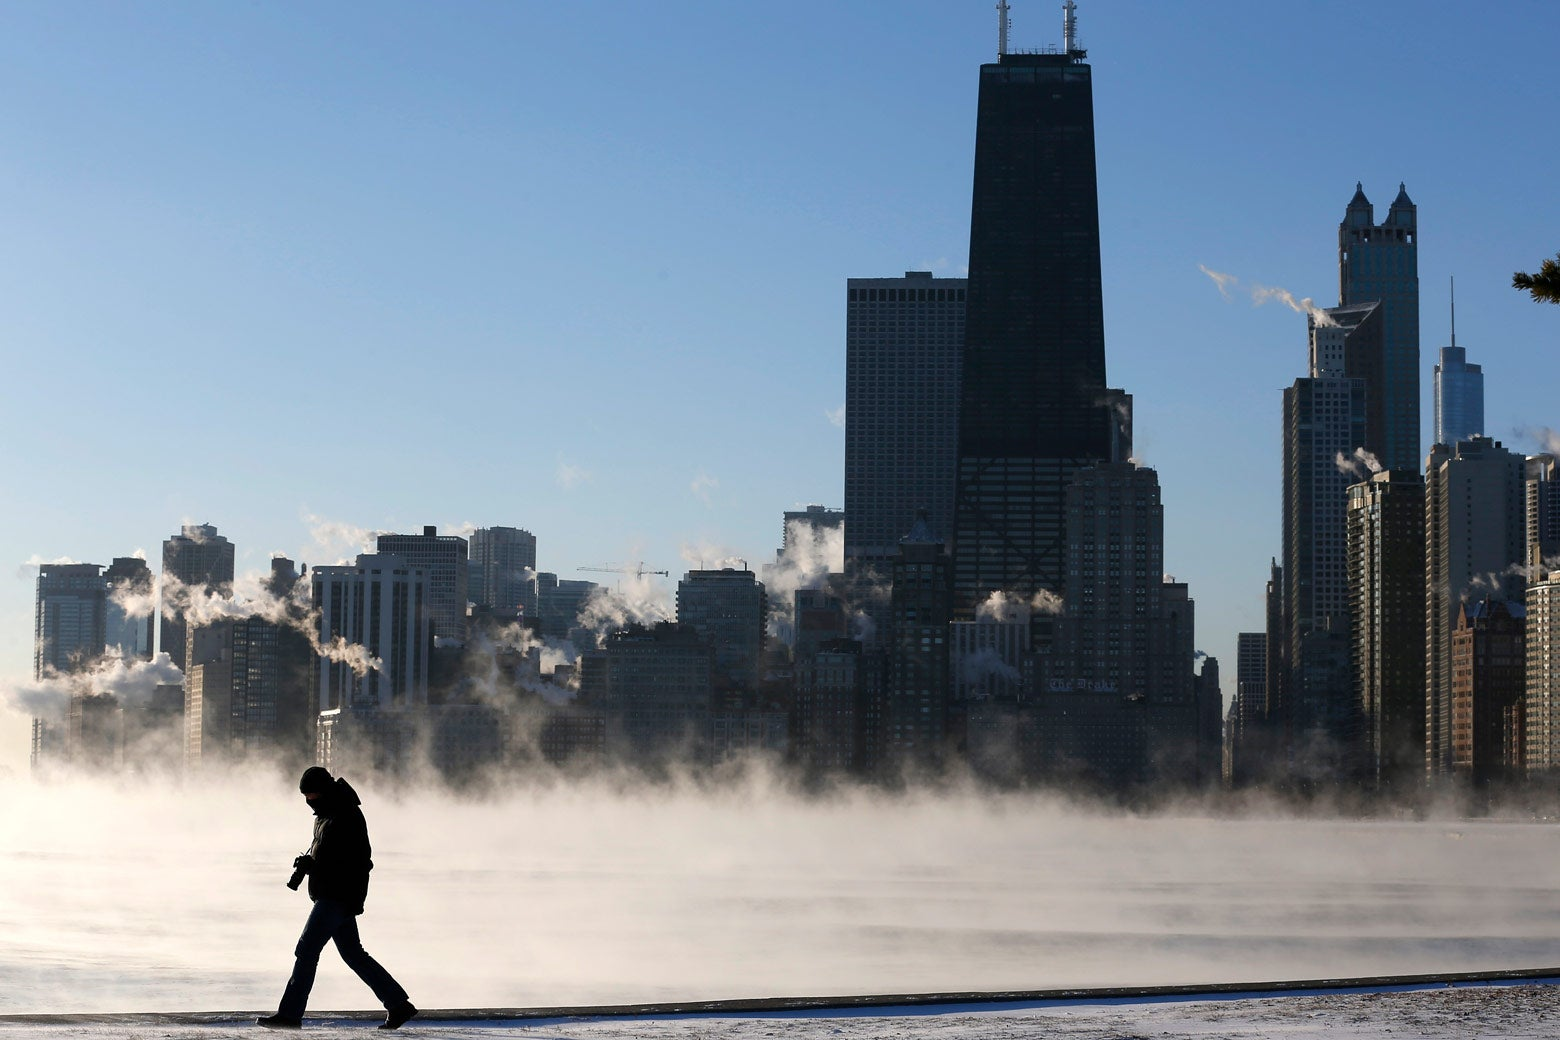 A man is silhouetted against the smoke rising off Lake Michigan.